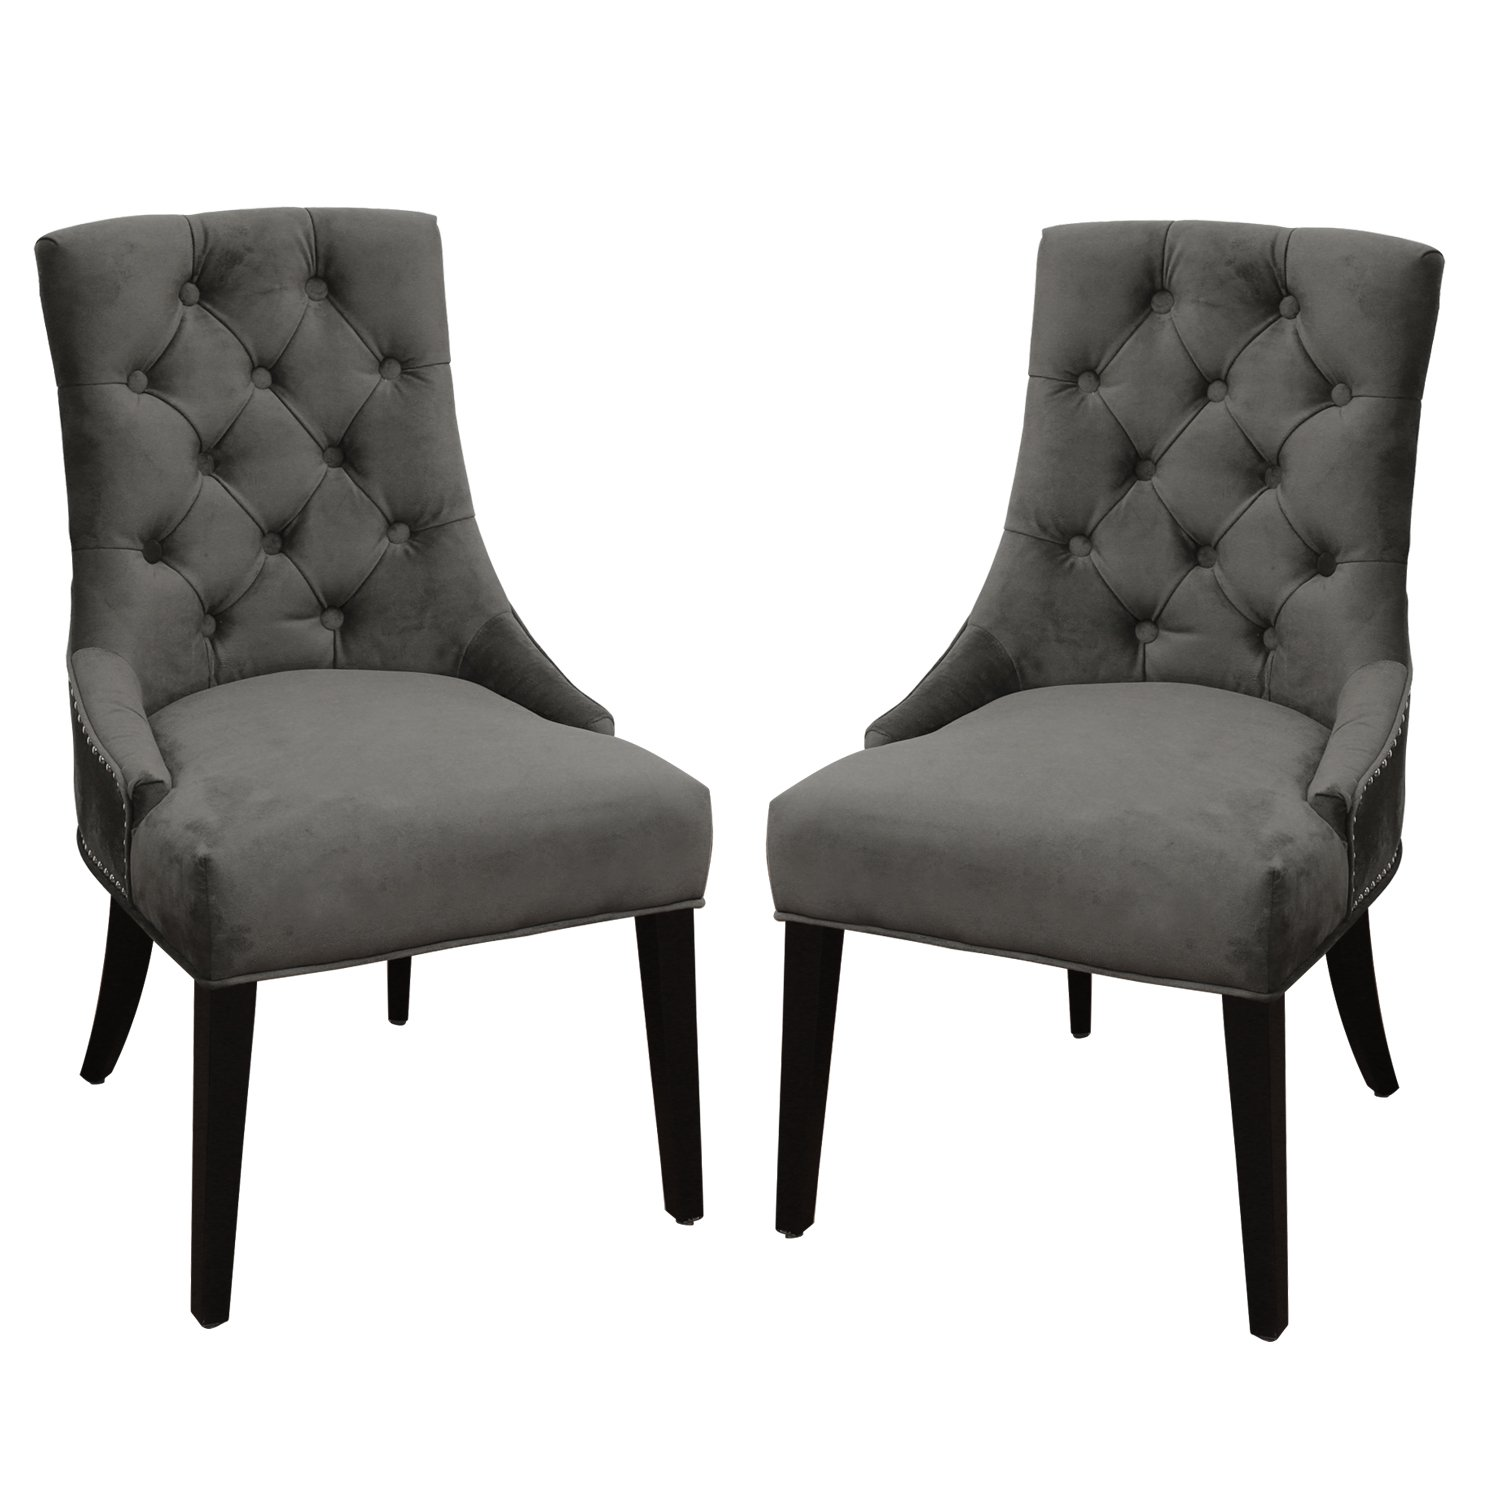 Joveco European Style Renaissance-Inspired Design Accent Side Chair - Set of 2 (Grey Velvet)